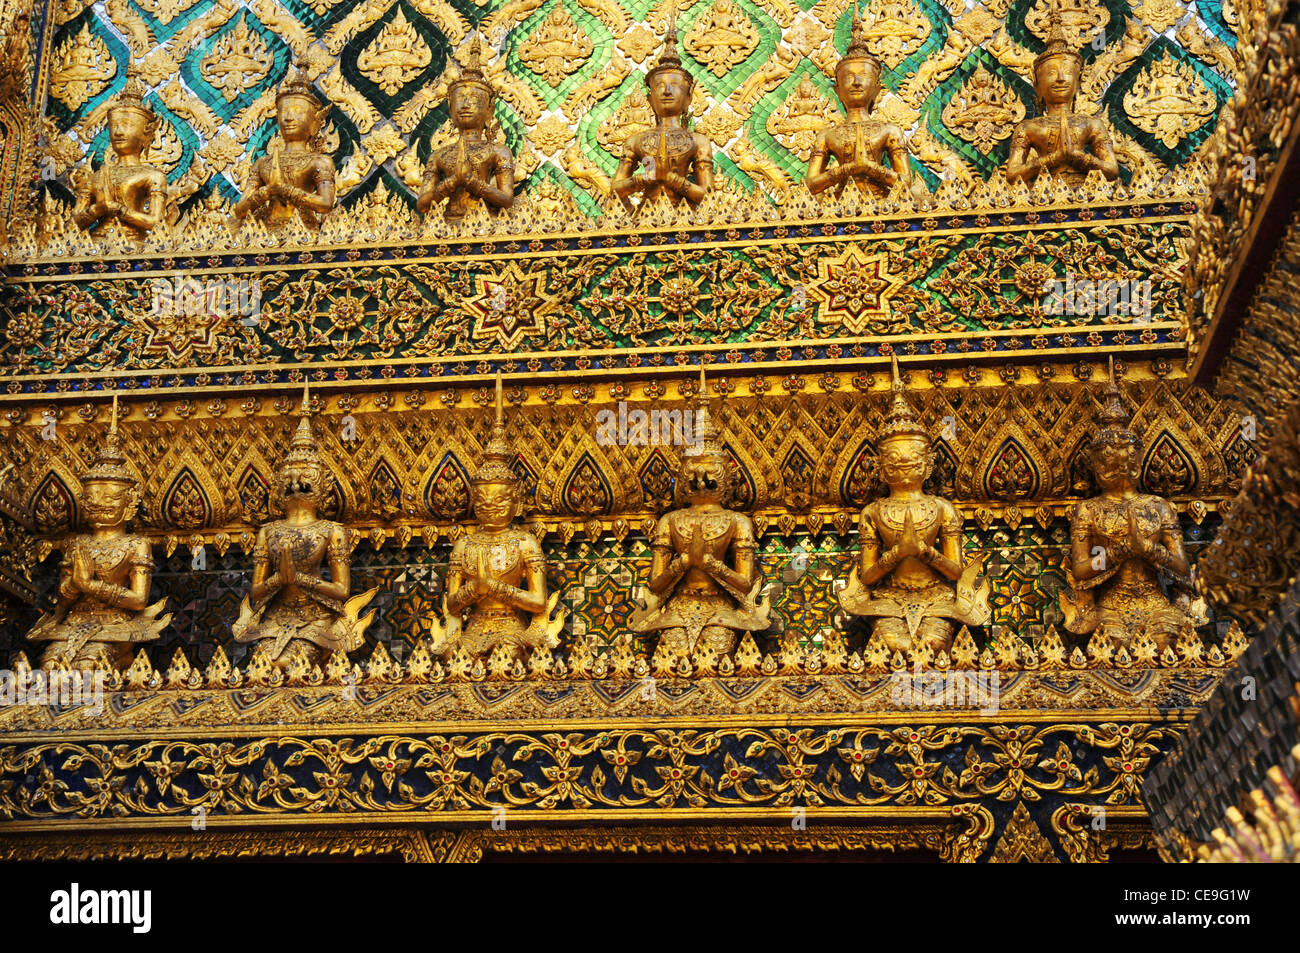 Guilded temple details, Grand Palace, Bangkok, Thailand - Stock Image